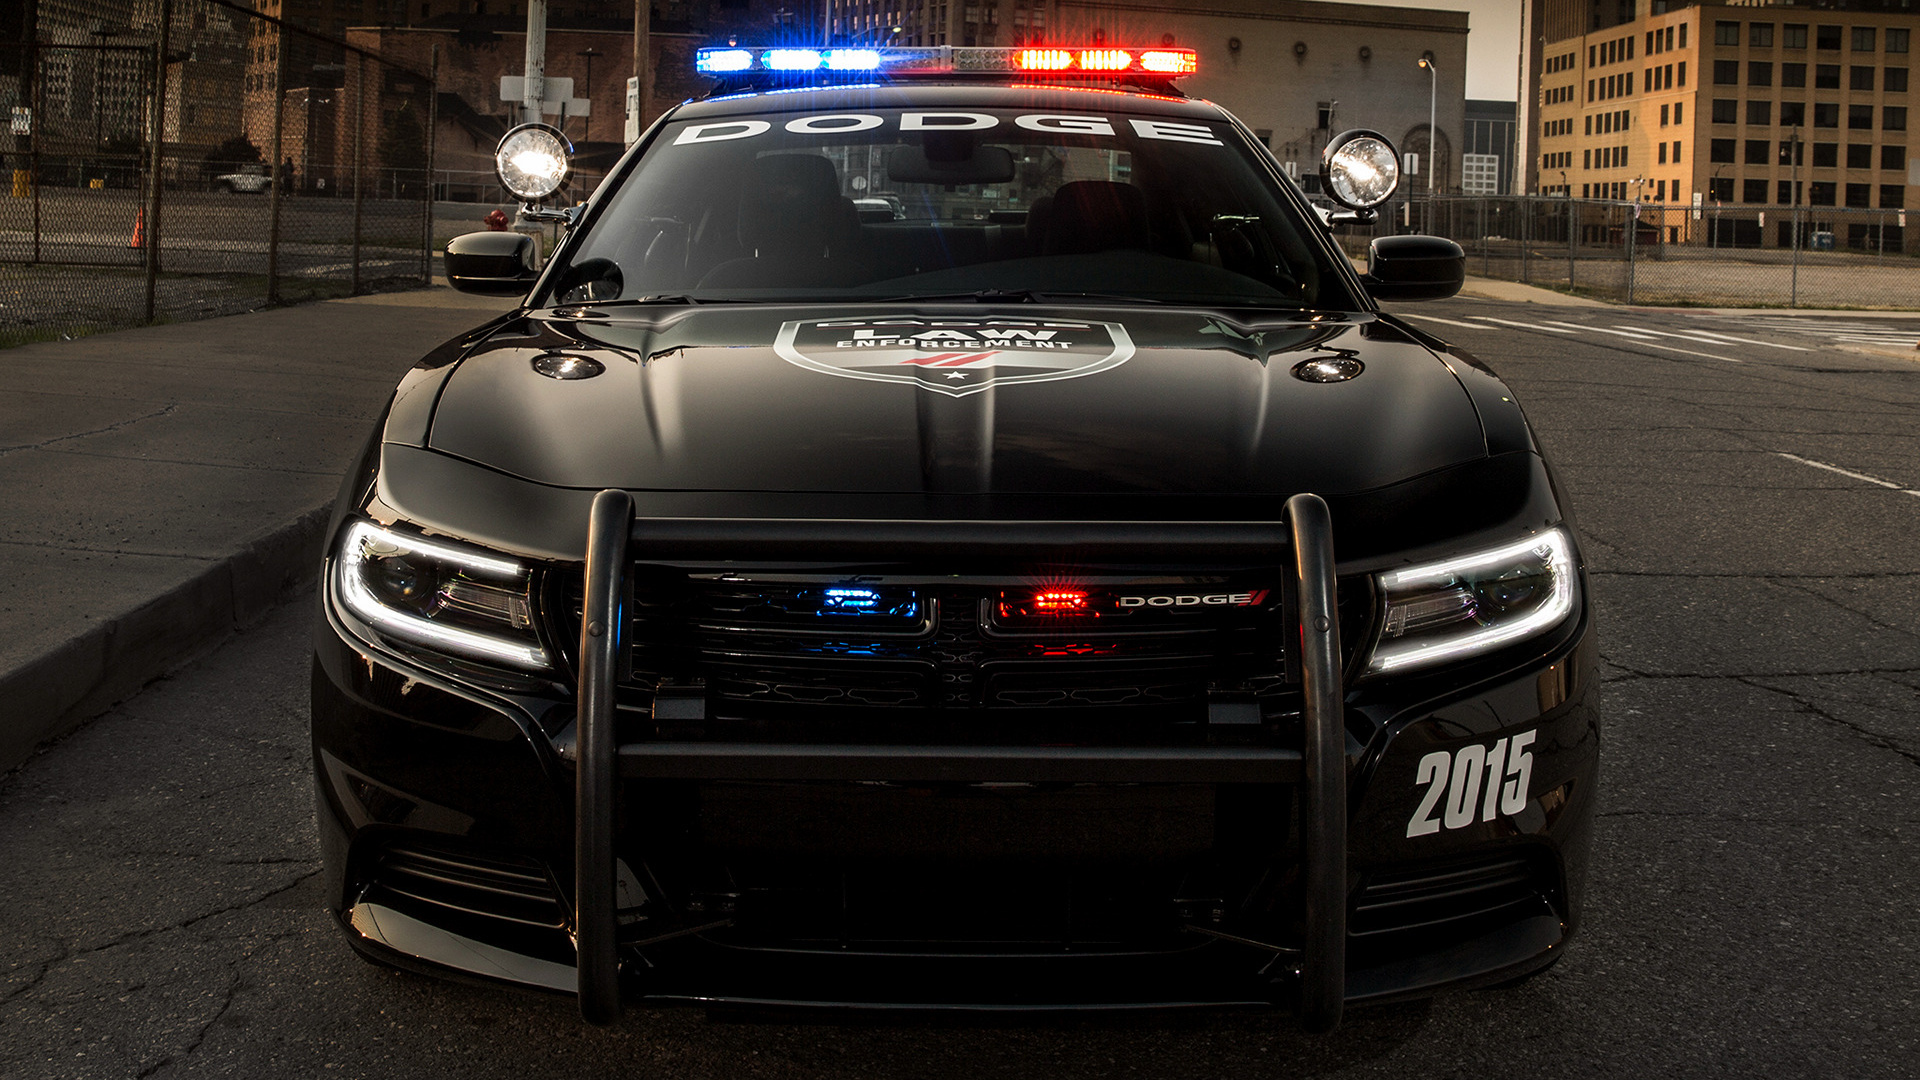 Dodge Charger Pursuit Awd 2015 Wallpapers And Hd Images